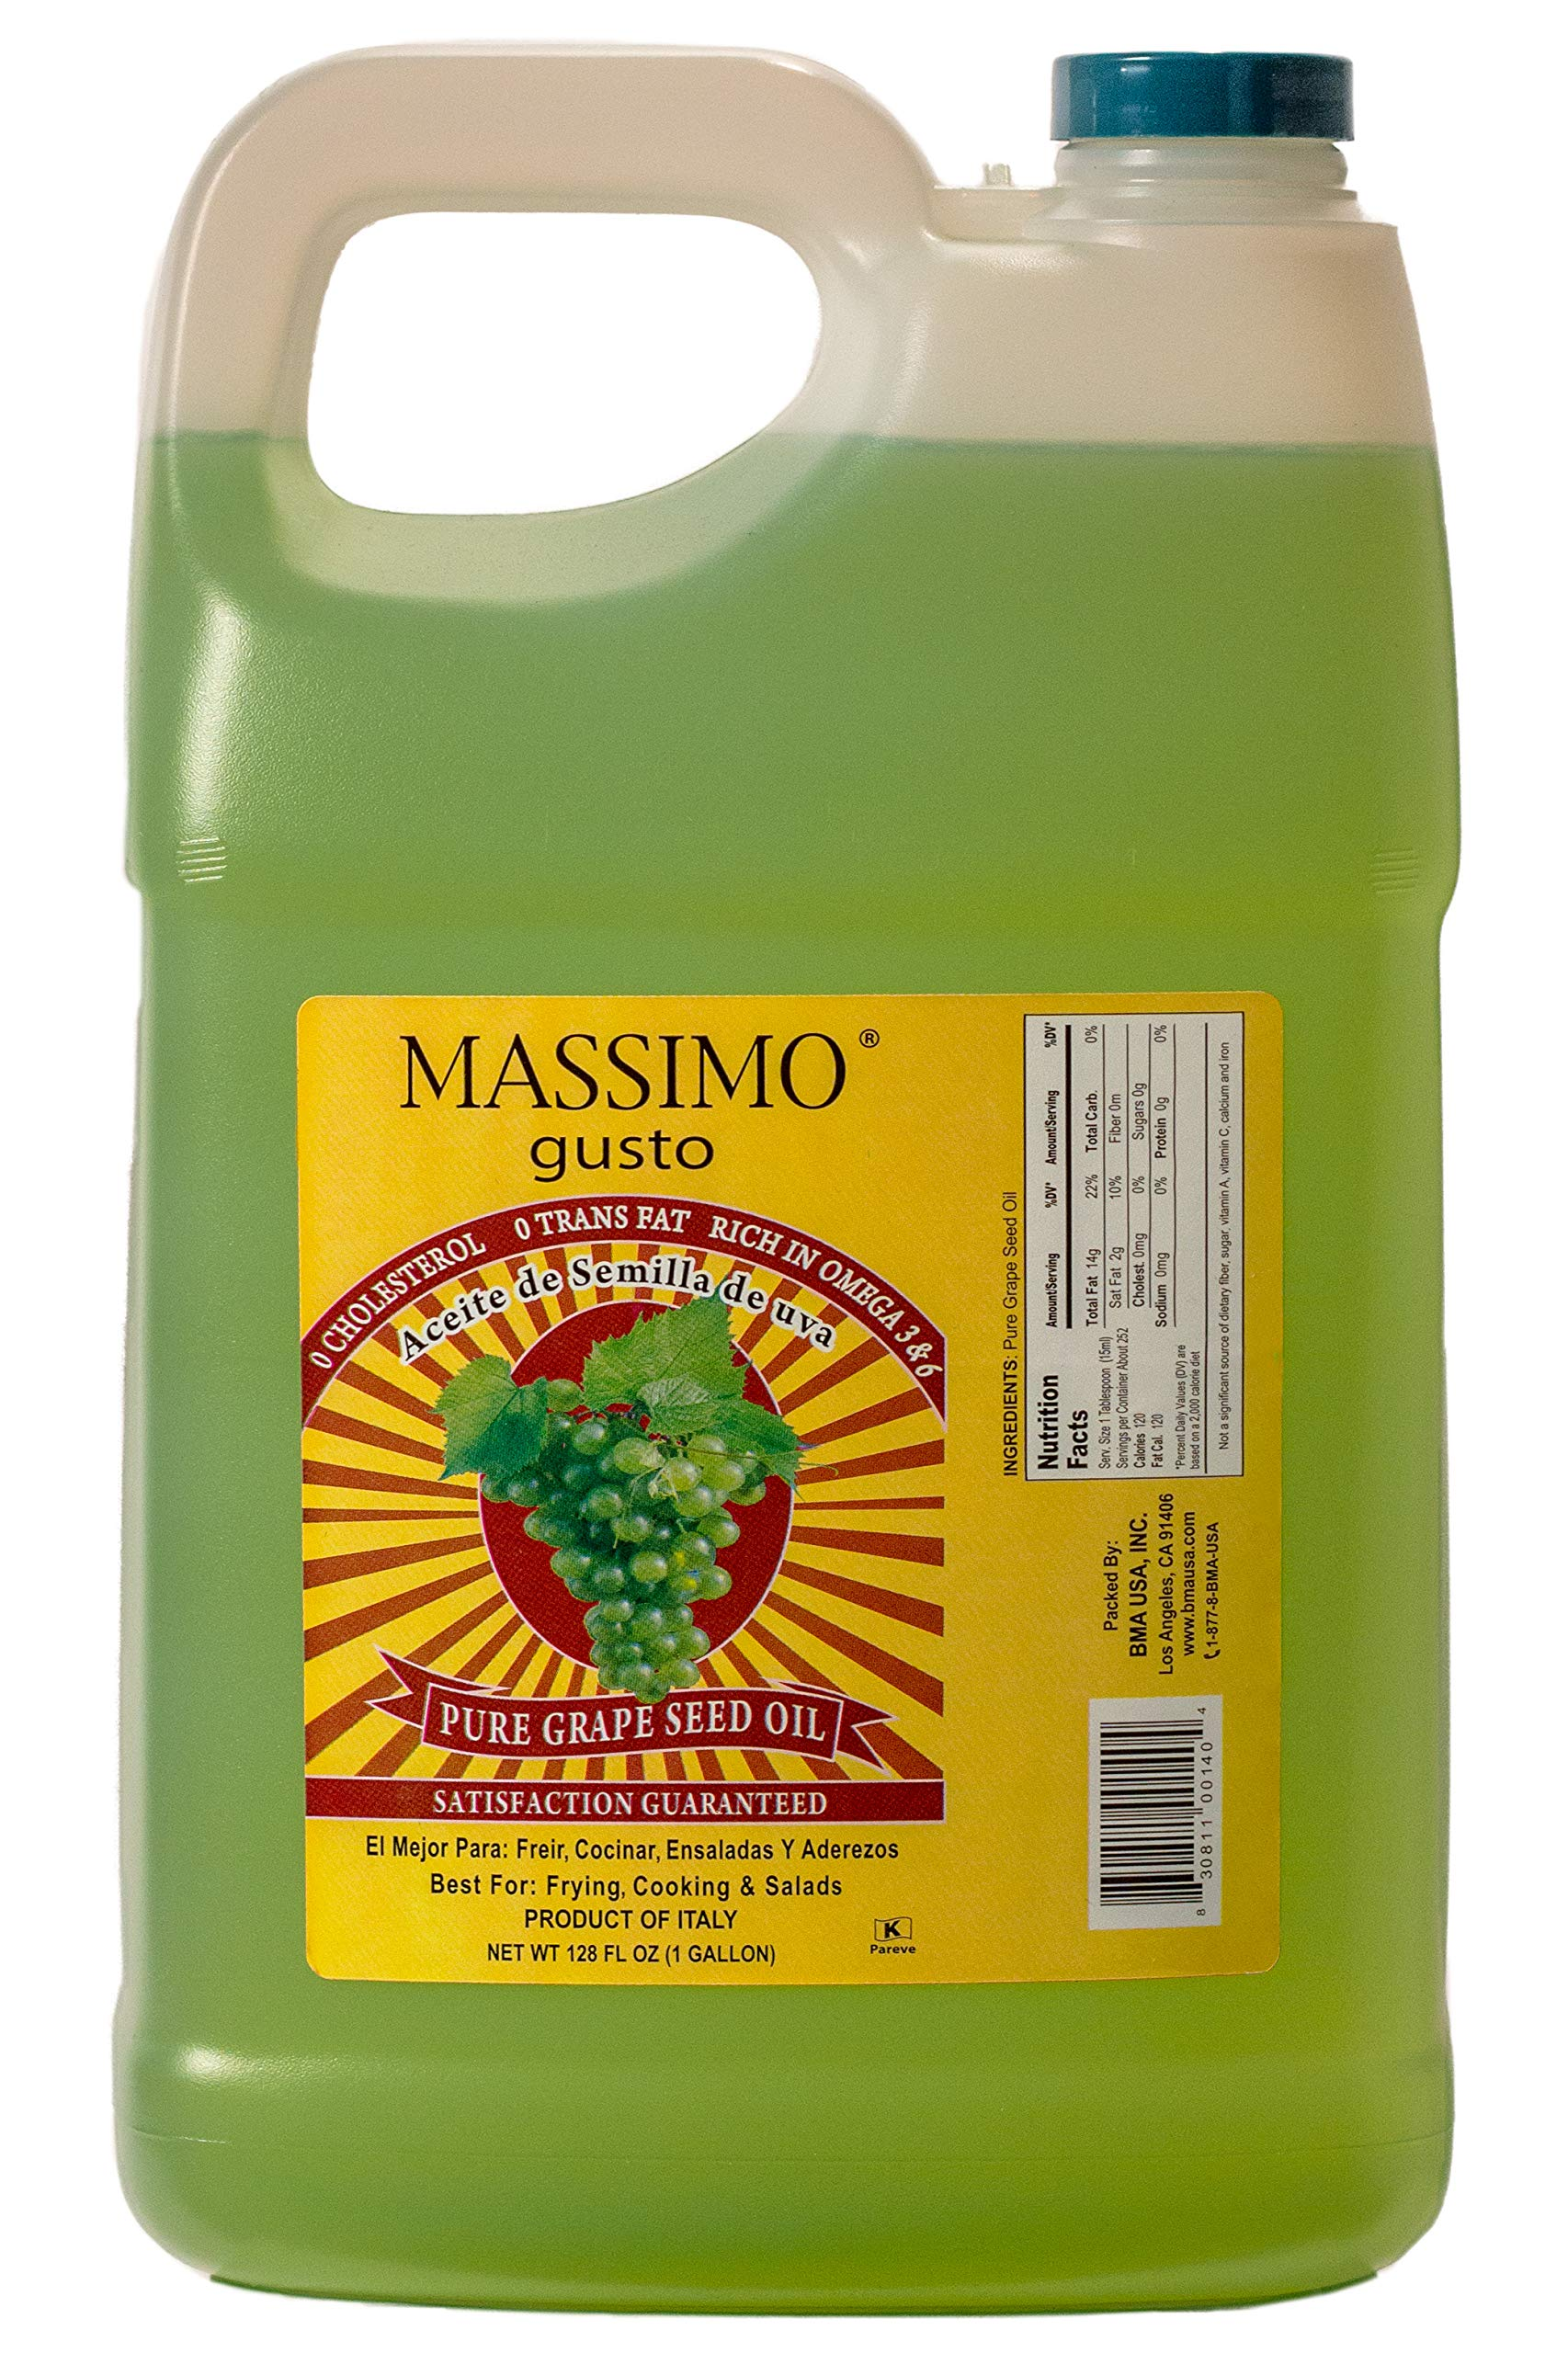 100% Pure Grape Seed Oil - 1 Gallon by Massimo Gusto by Massimo Gusto